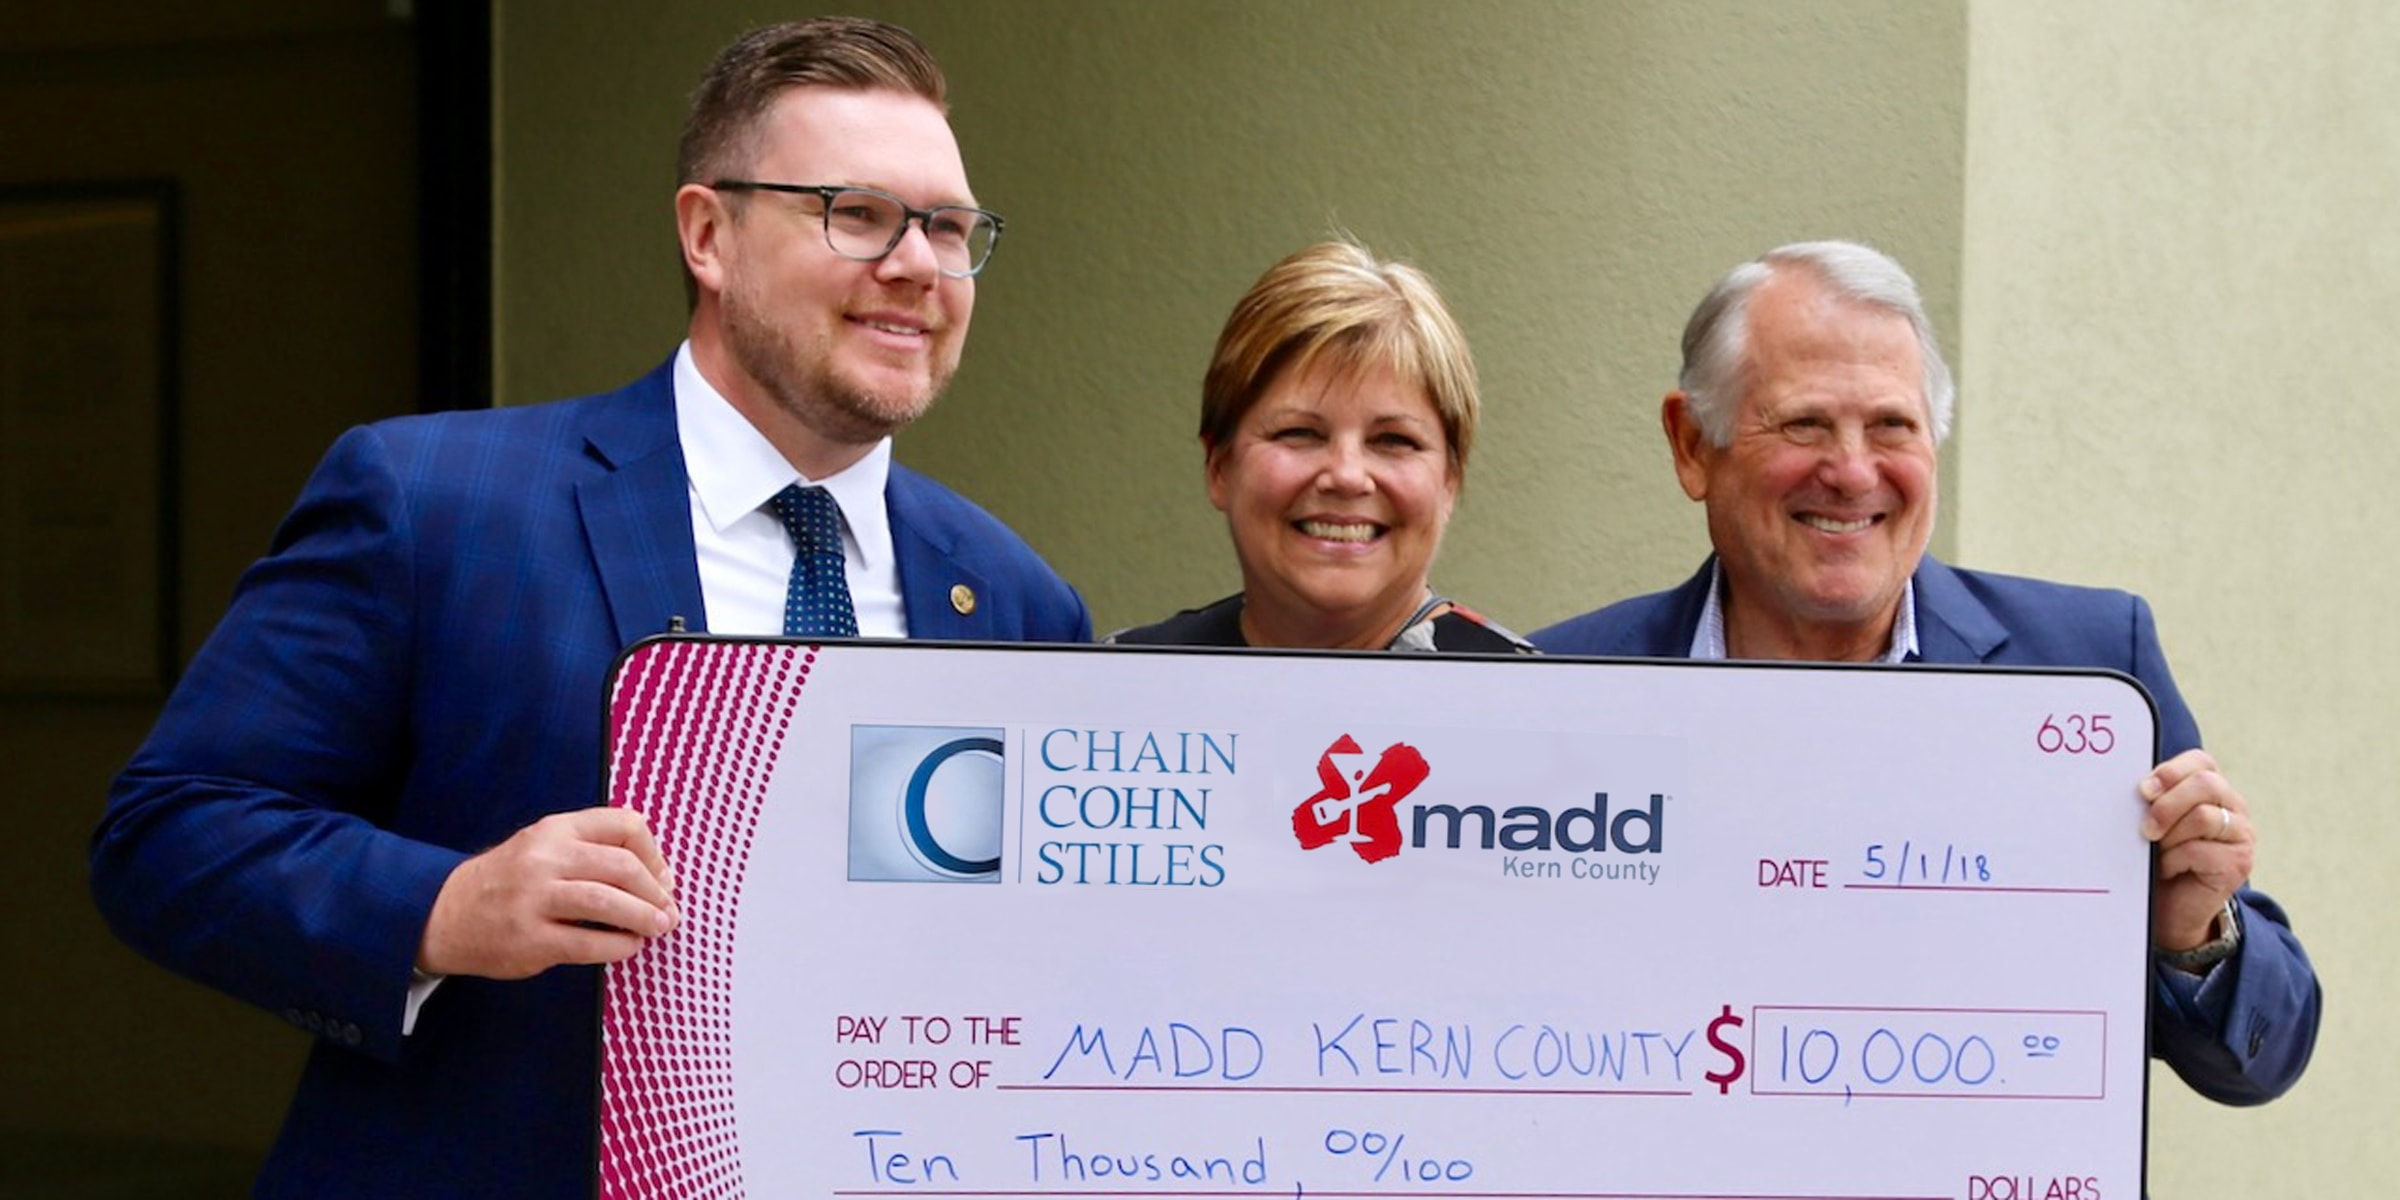 Chain | Cohn | Stiles 'gives big' to local nonprofits in Kern County's giving event